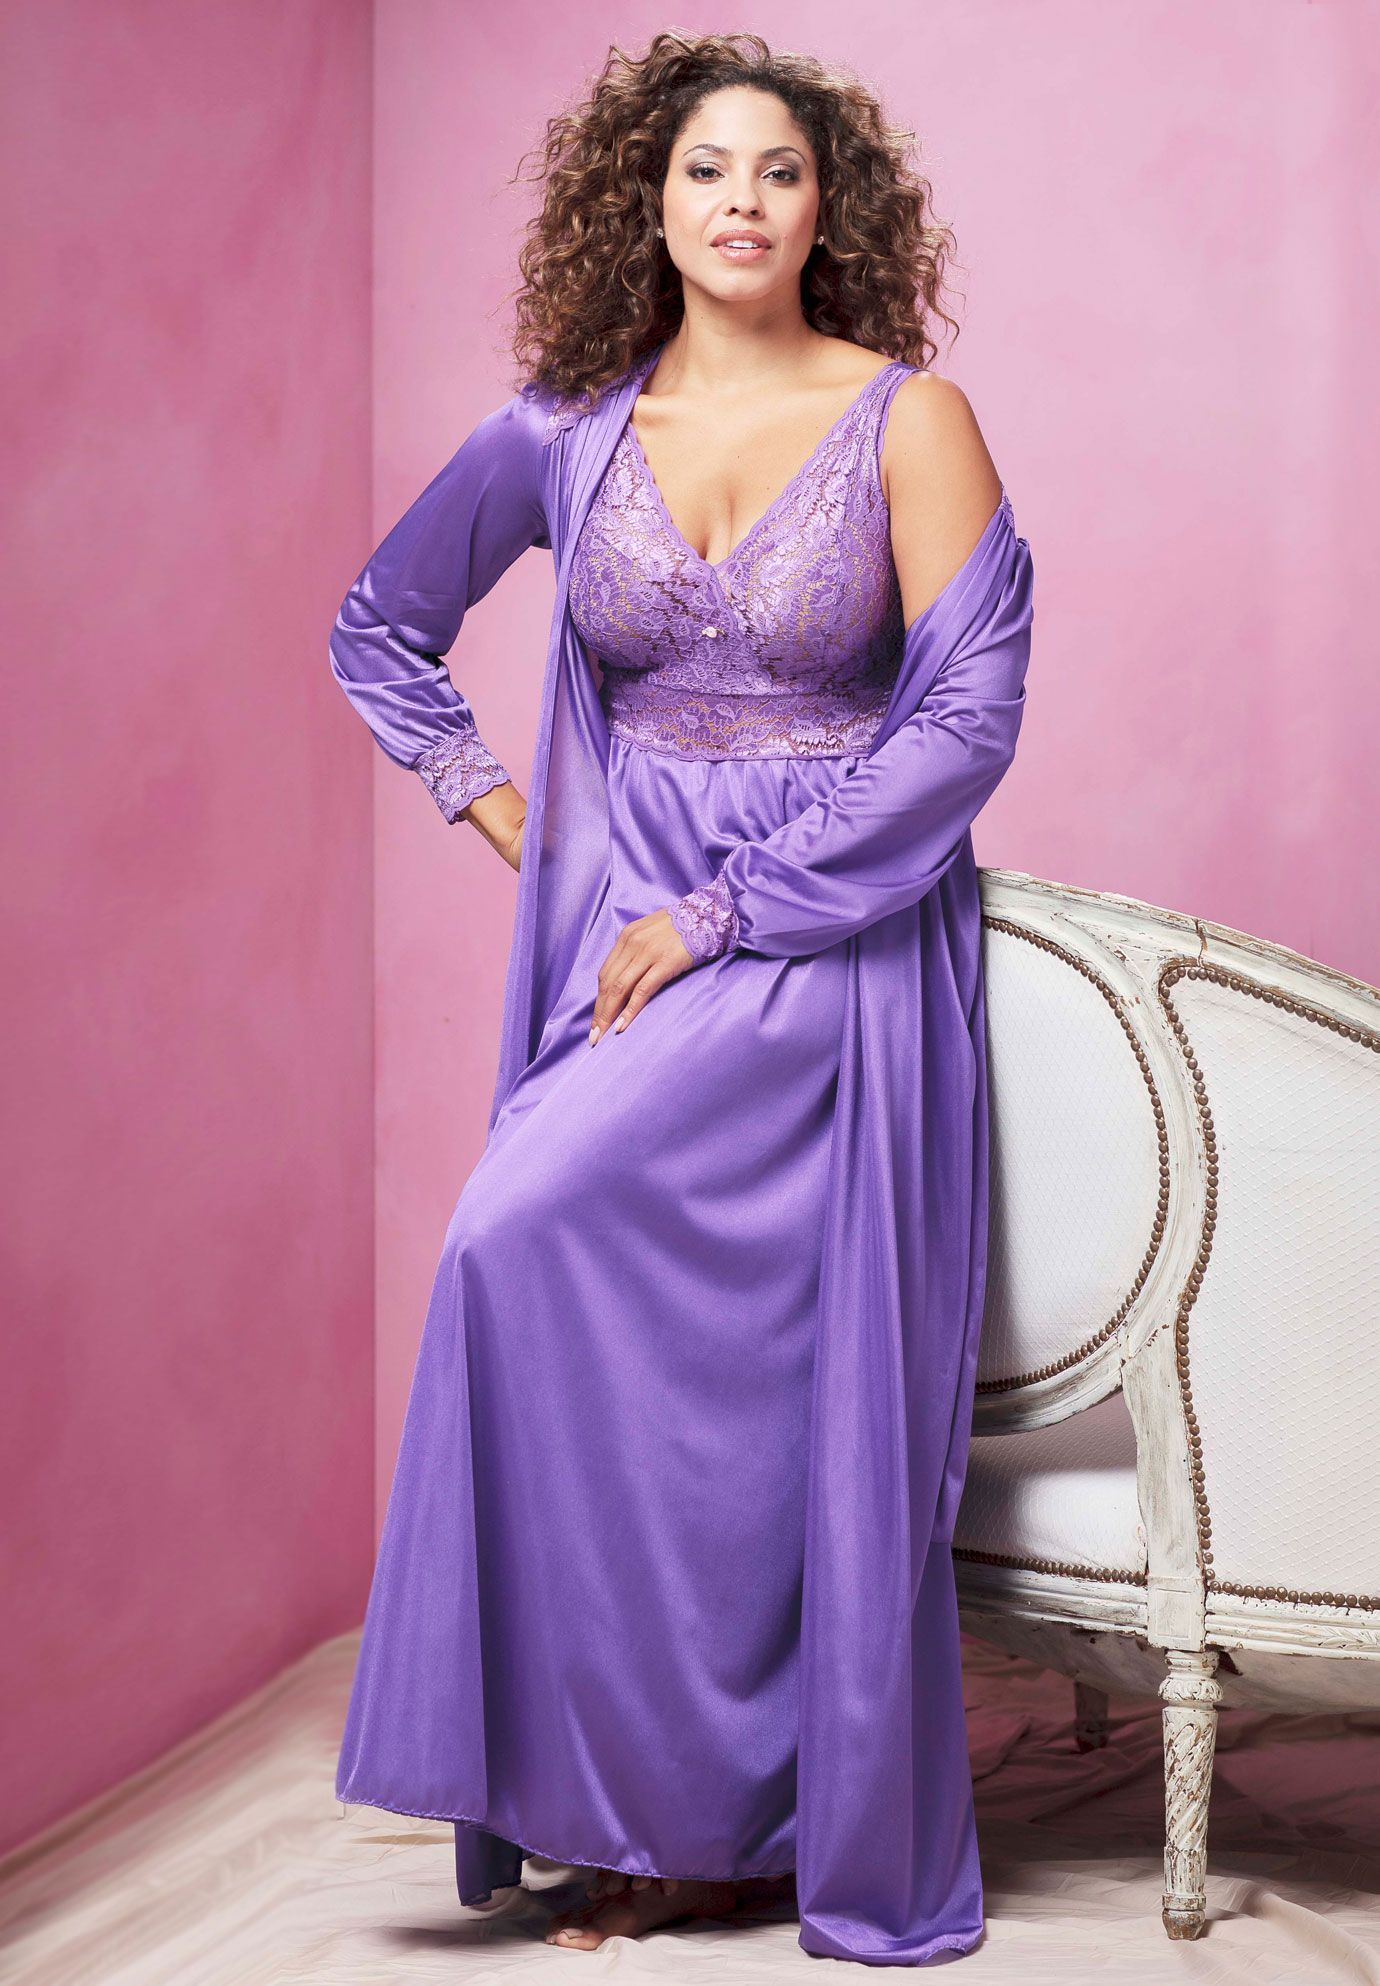 0a68633db76 Plus Size Long Tricot and Lace Peignoir Set